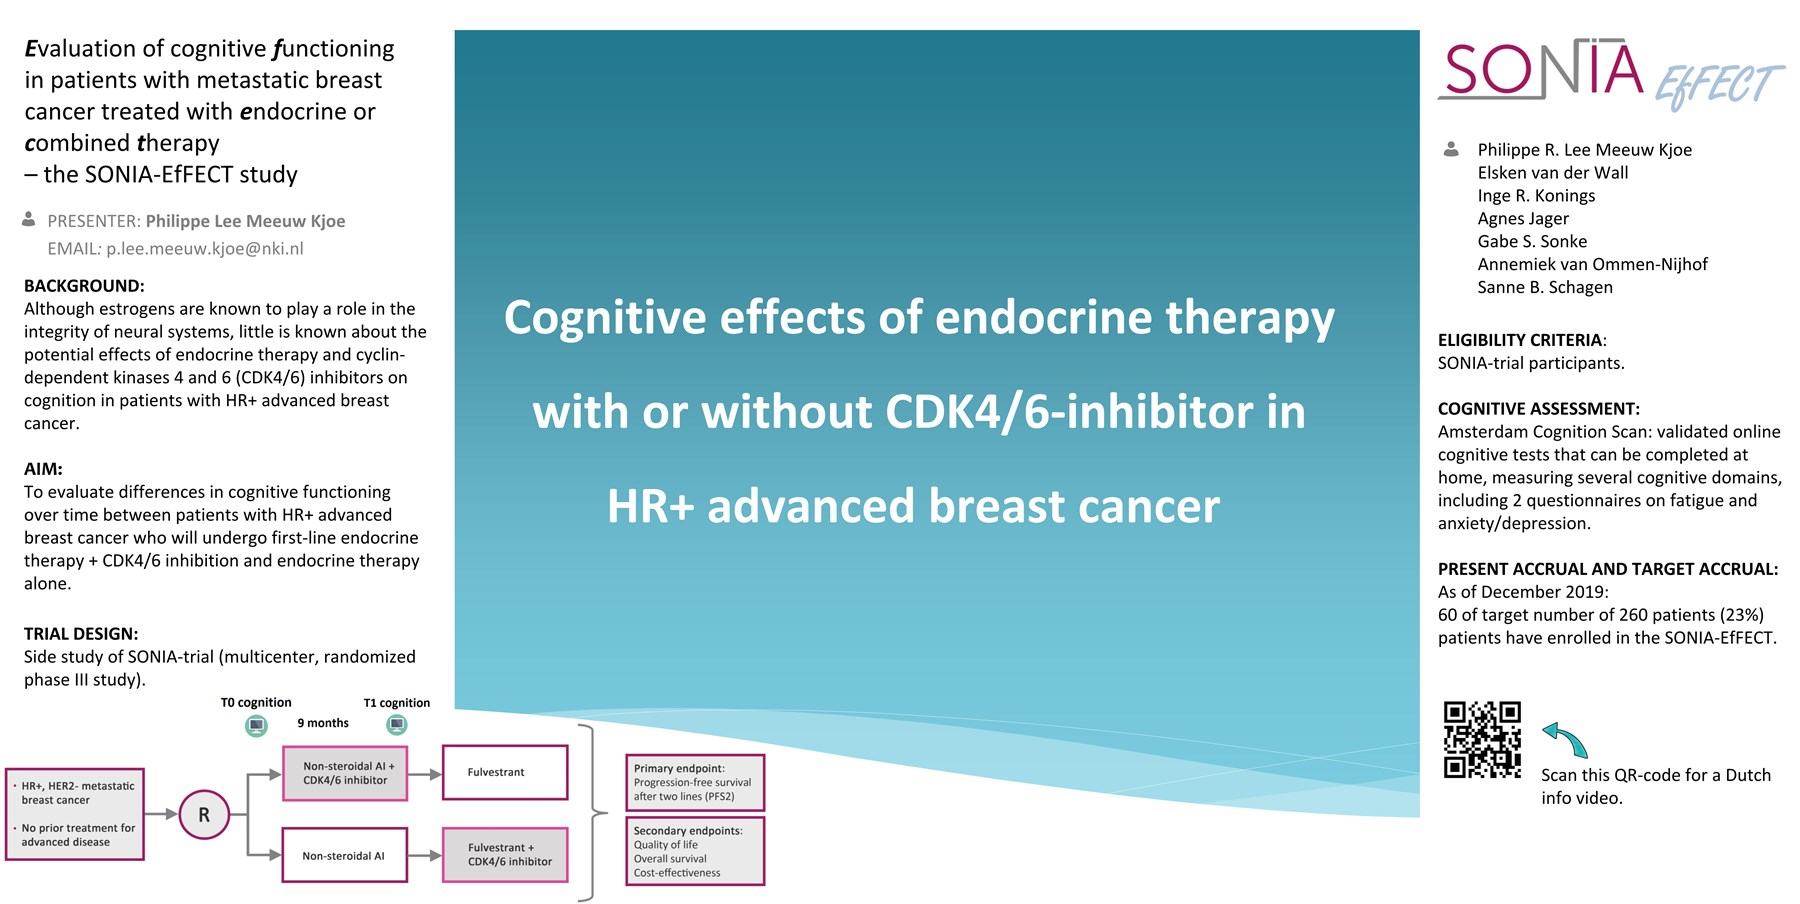 Evaluation of cognitive functioning in patients with metastatic breast cancer treated with endocrine or combined therapy